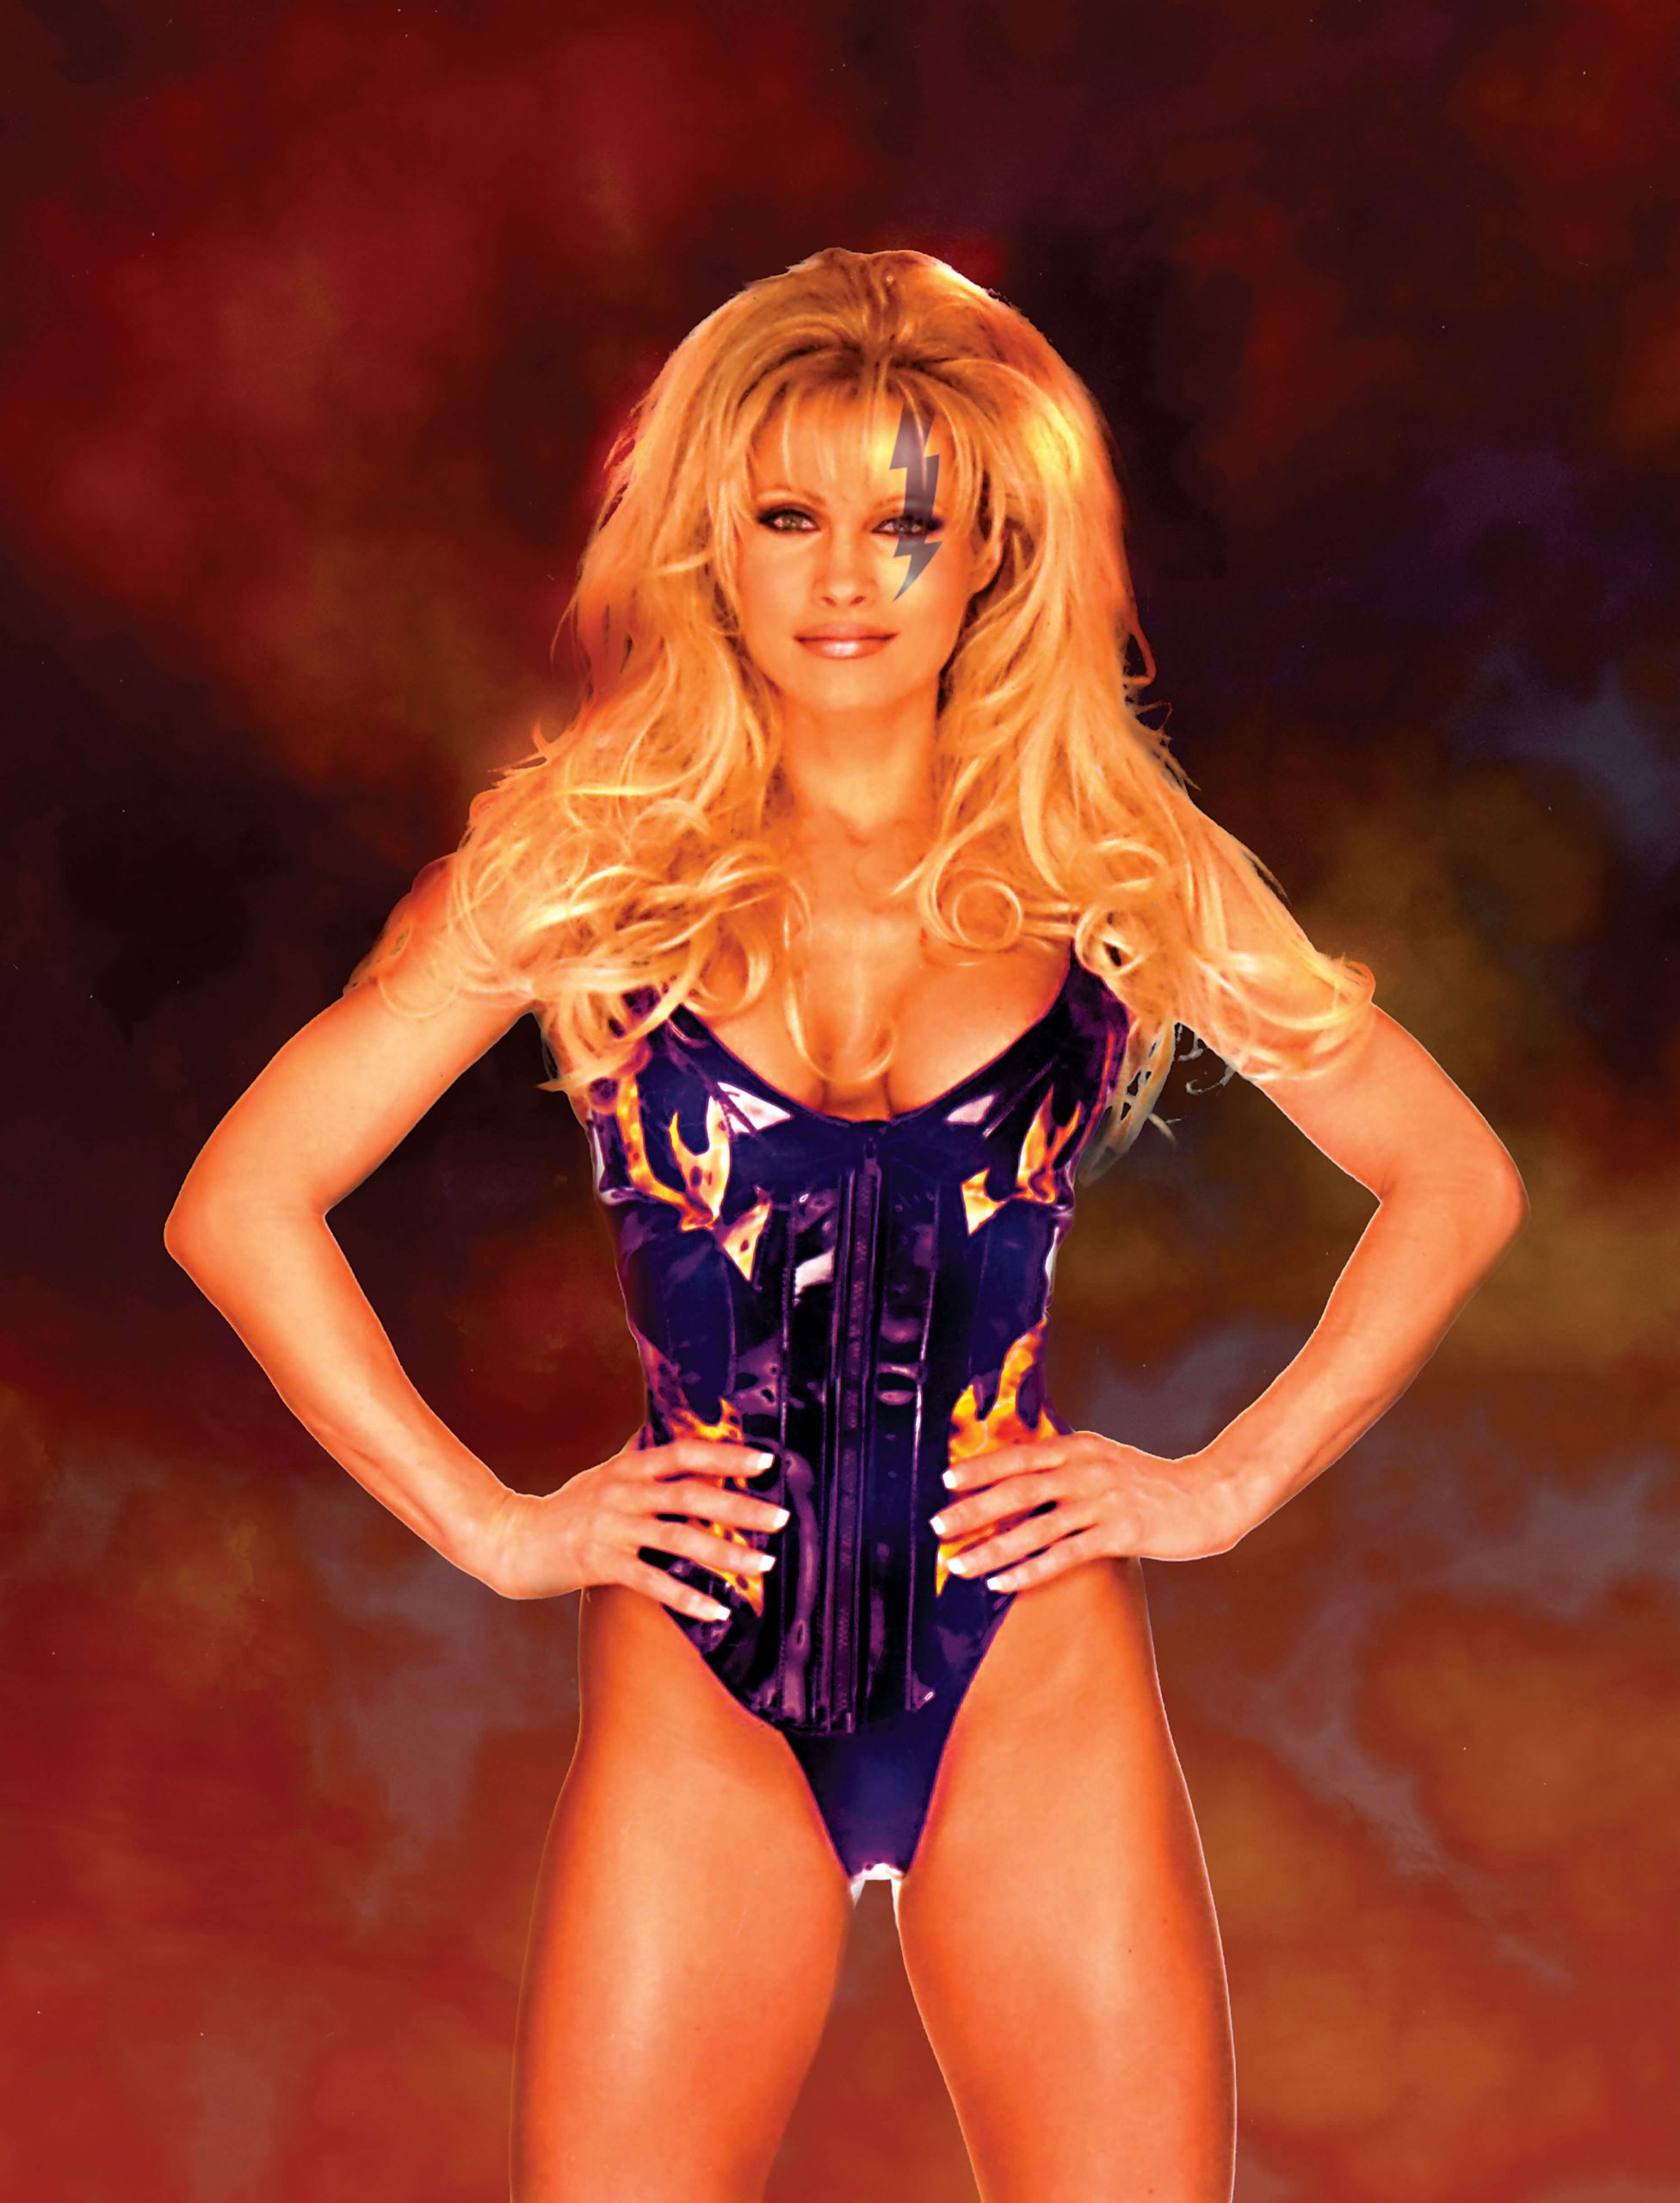 Sable hot picture